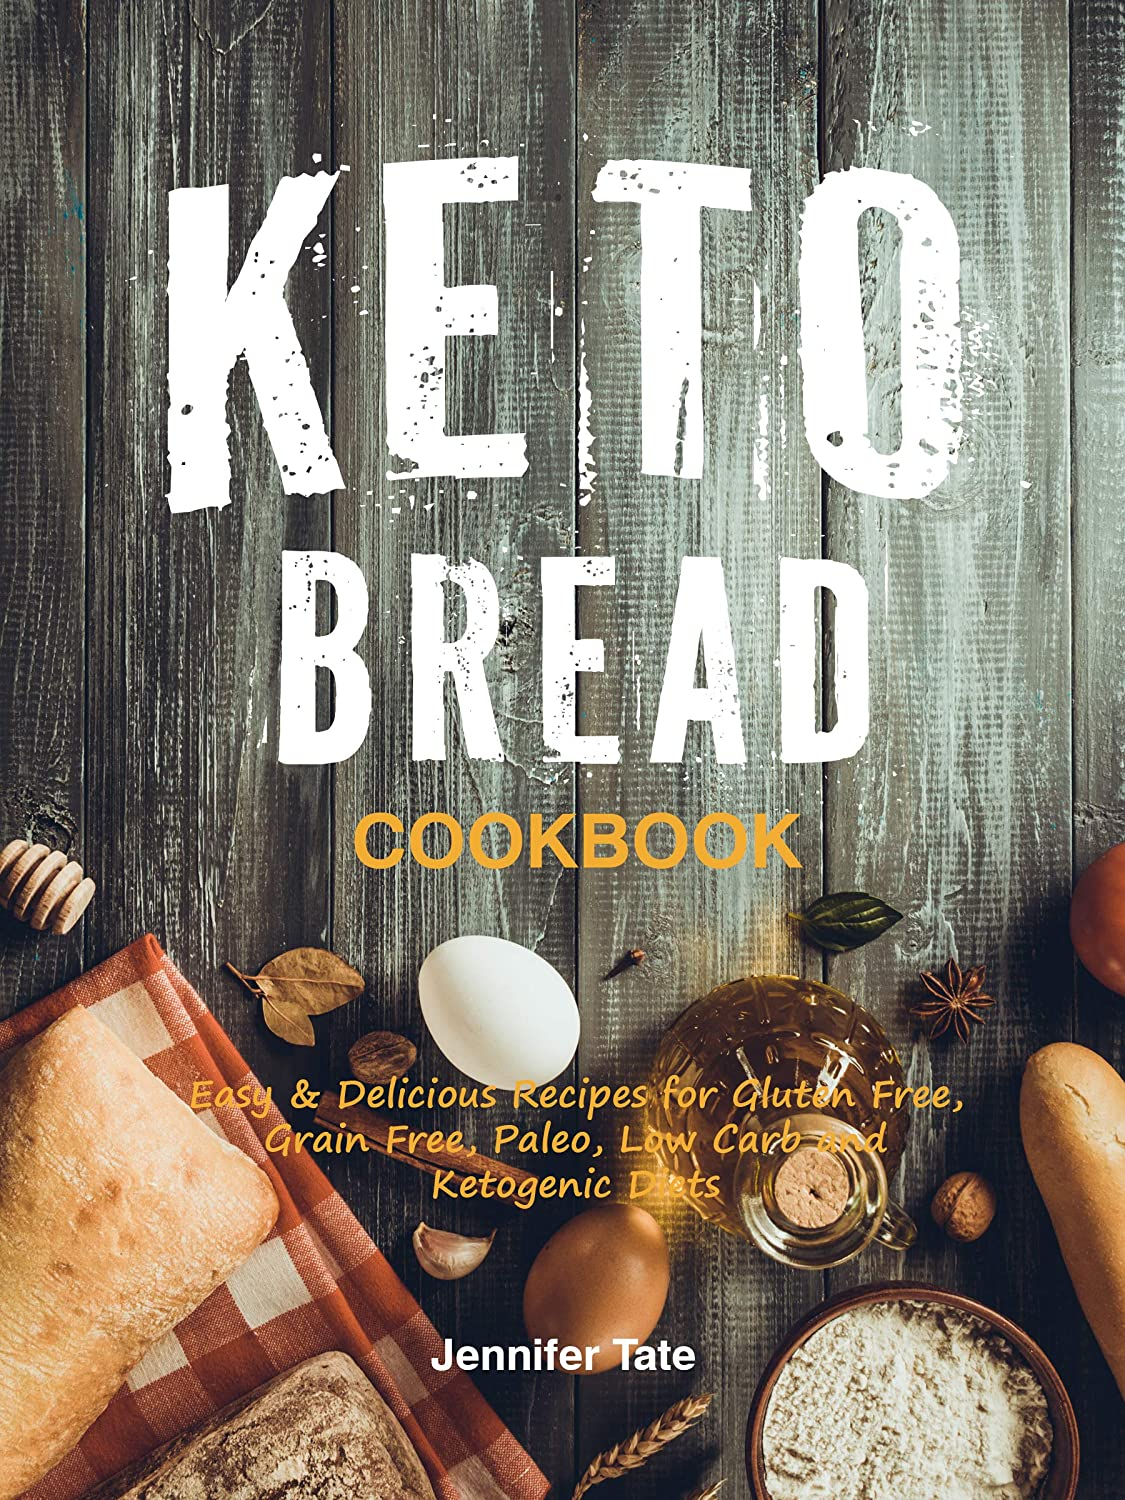 Keto Bread Cookbook: Easy & Delicious Recipes for Gluten Free, Grain Free, Paleo, Low-Carb and Ketogenic Diets (English Edition)